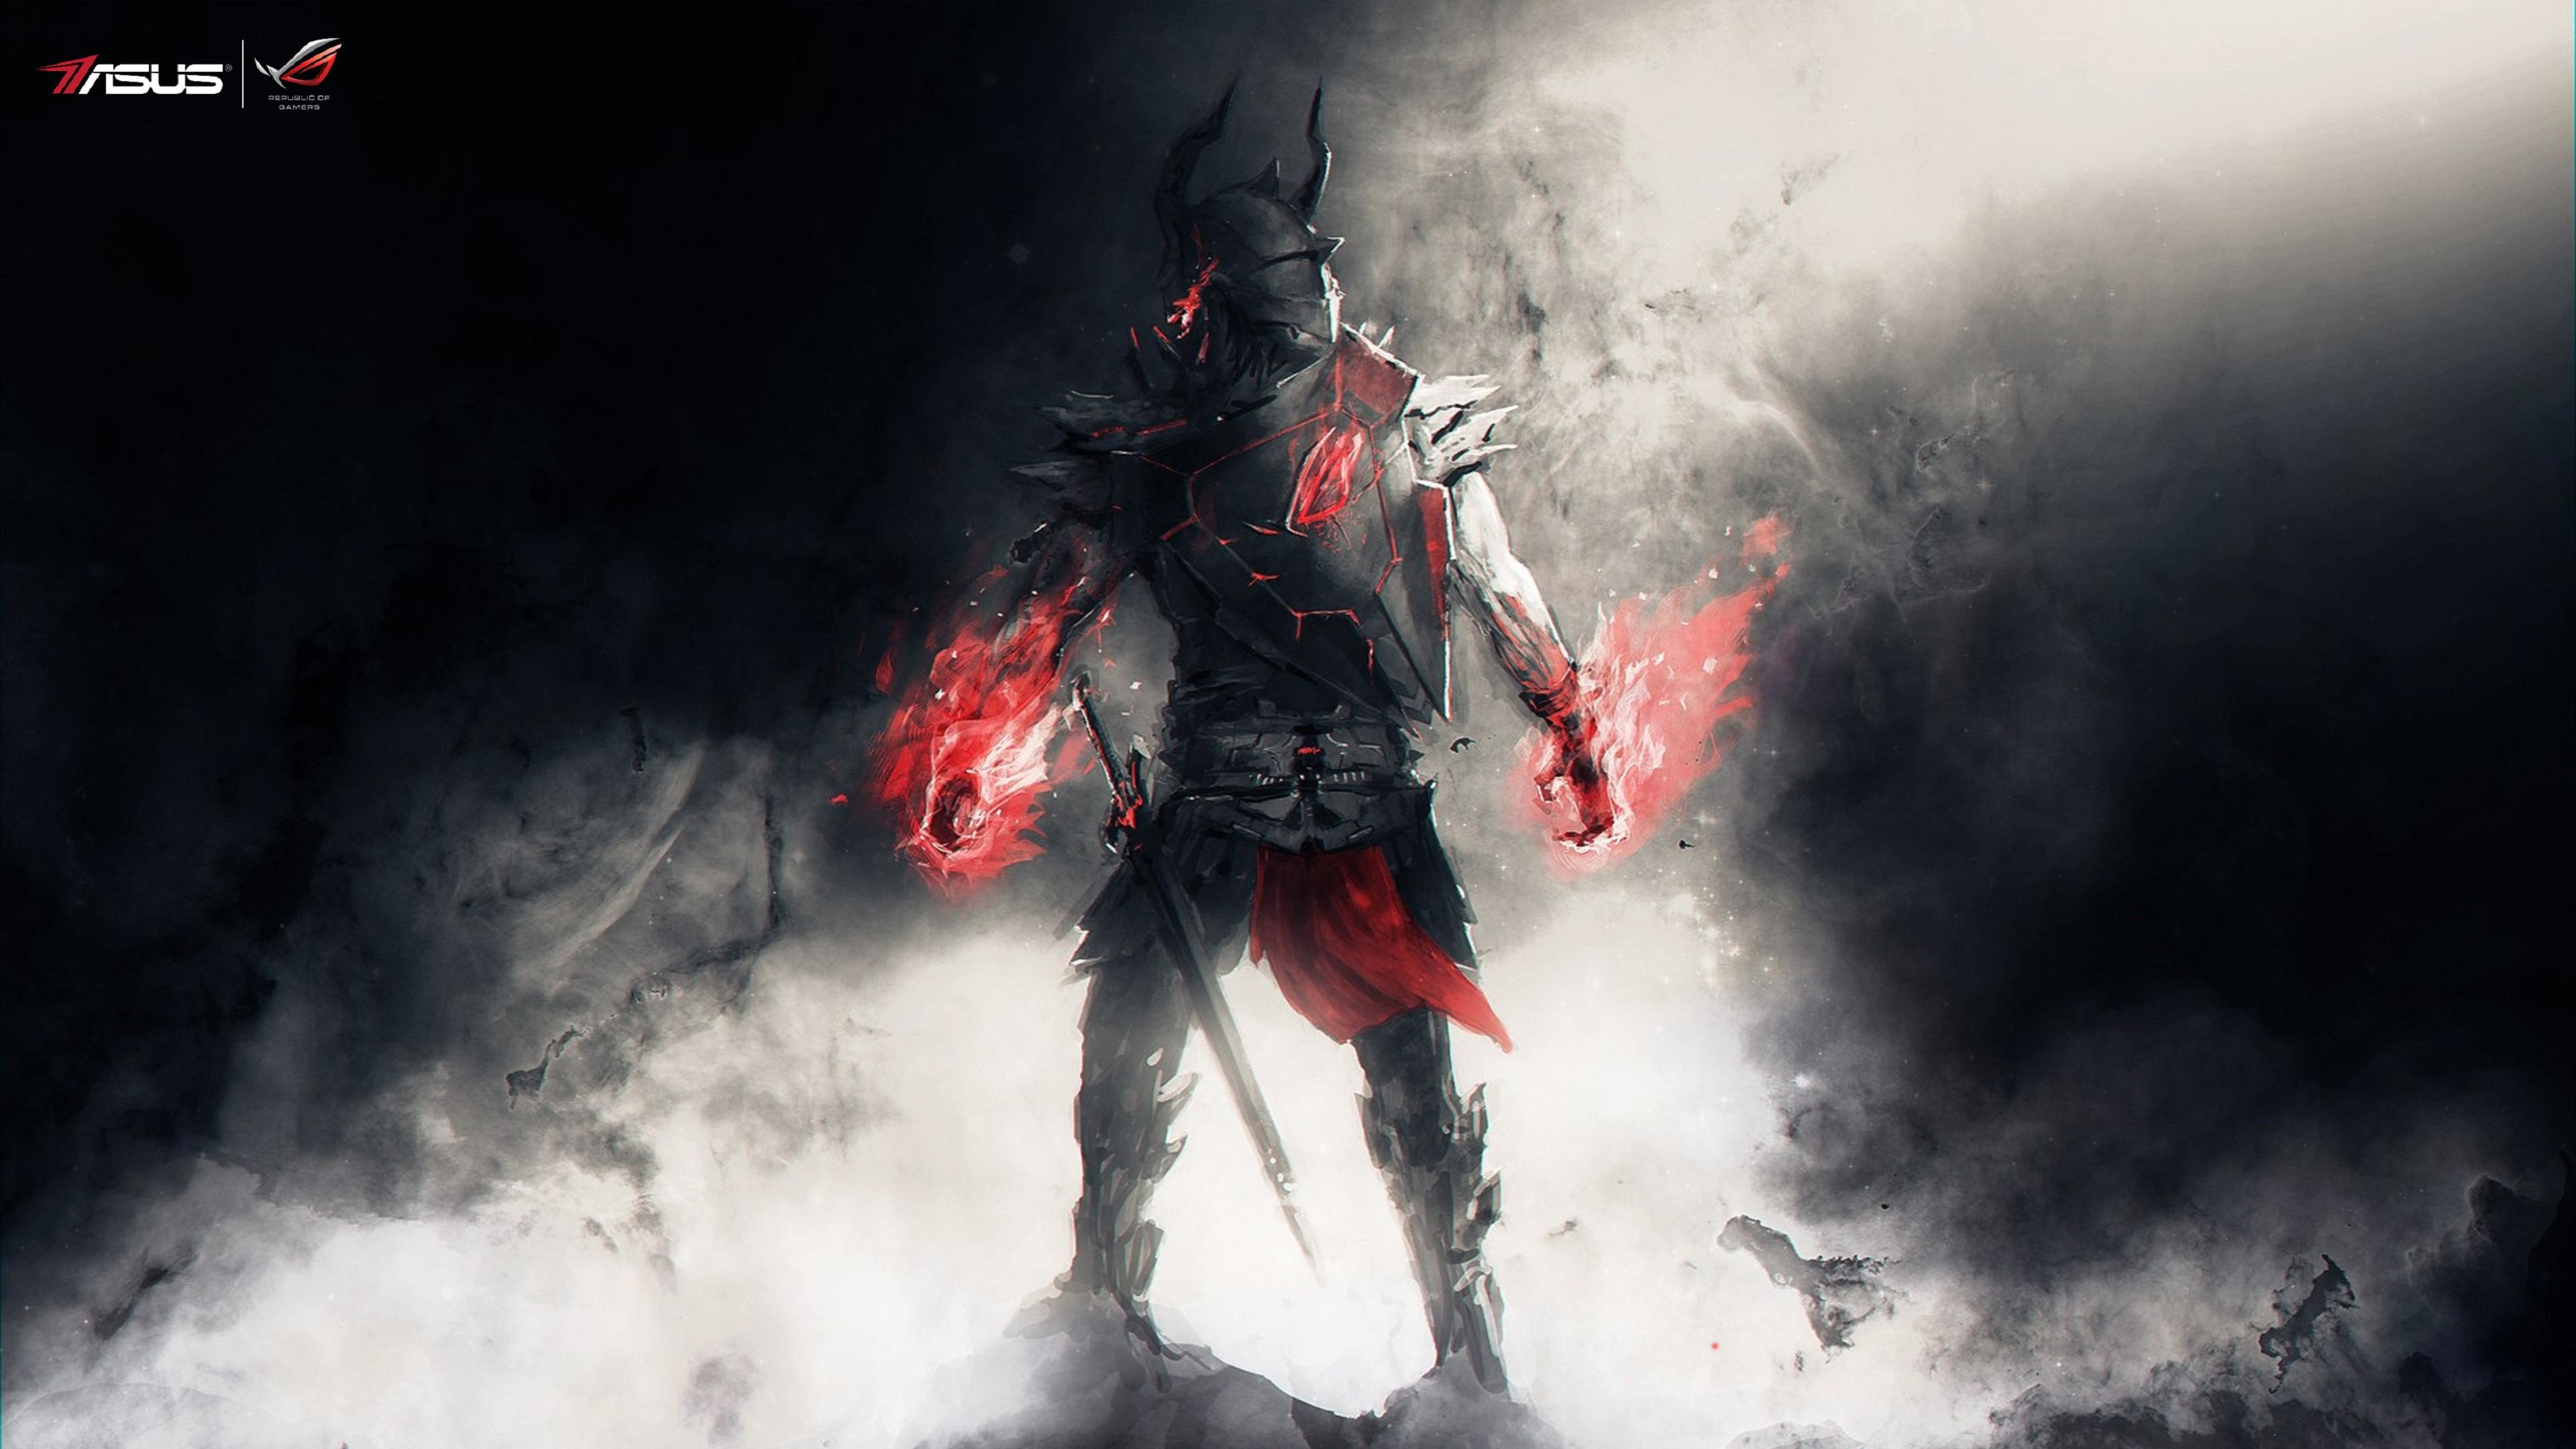 Best 25+ Gaming wallpapers hd ideas on Pinterest   Gaming wallpapers,  Skyrim for xbox one and Fallout 3 codes